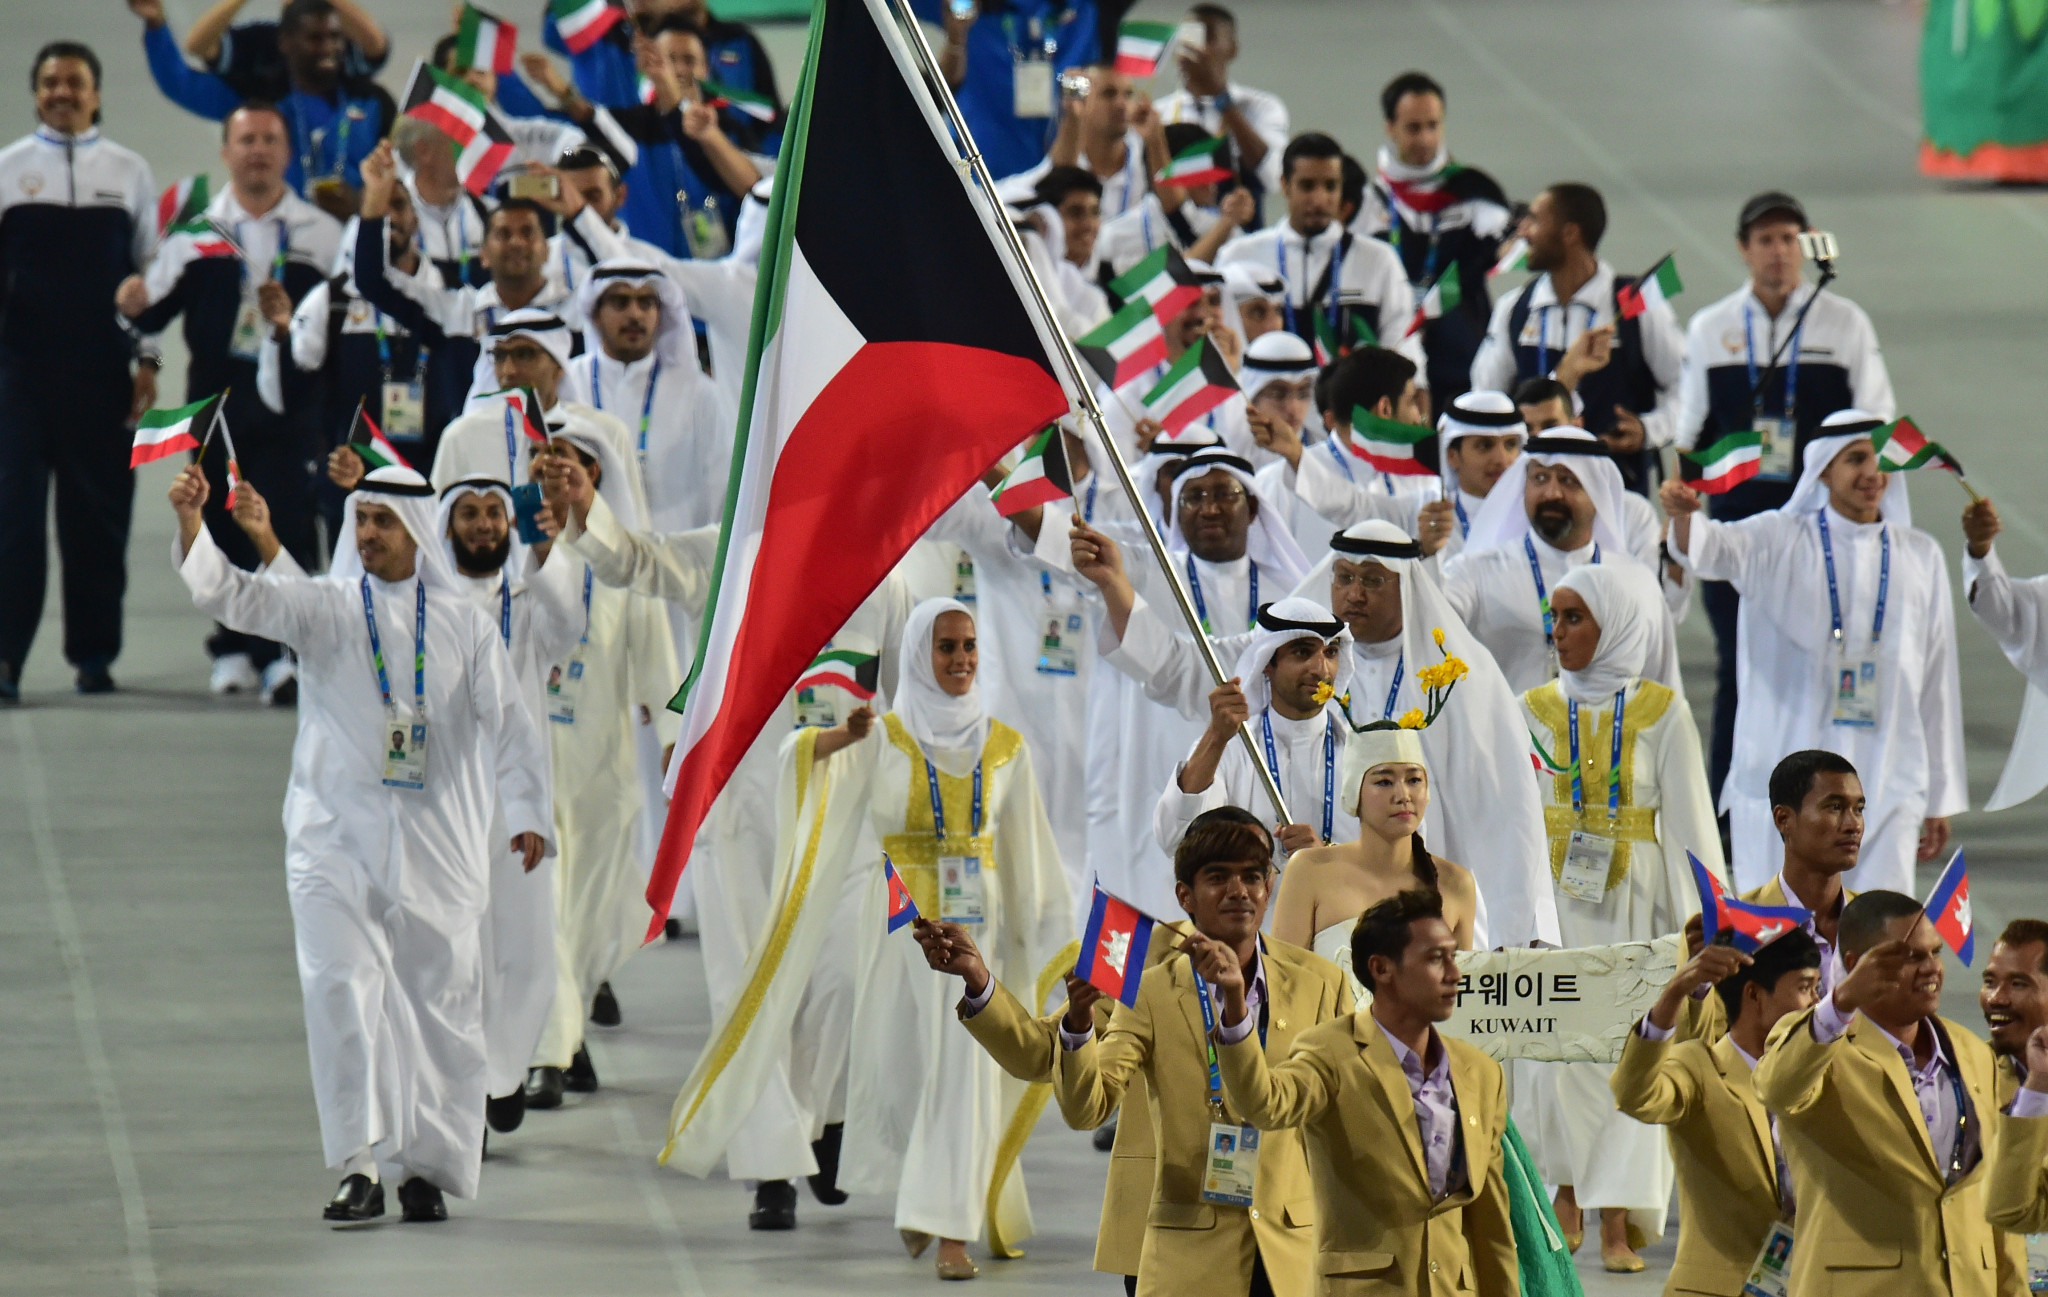 Kuwait suspension lifted by IOC in time for Asian Games